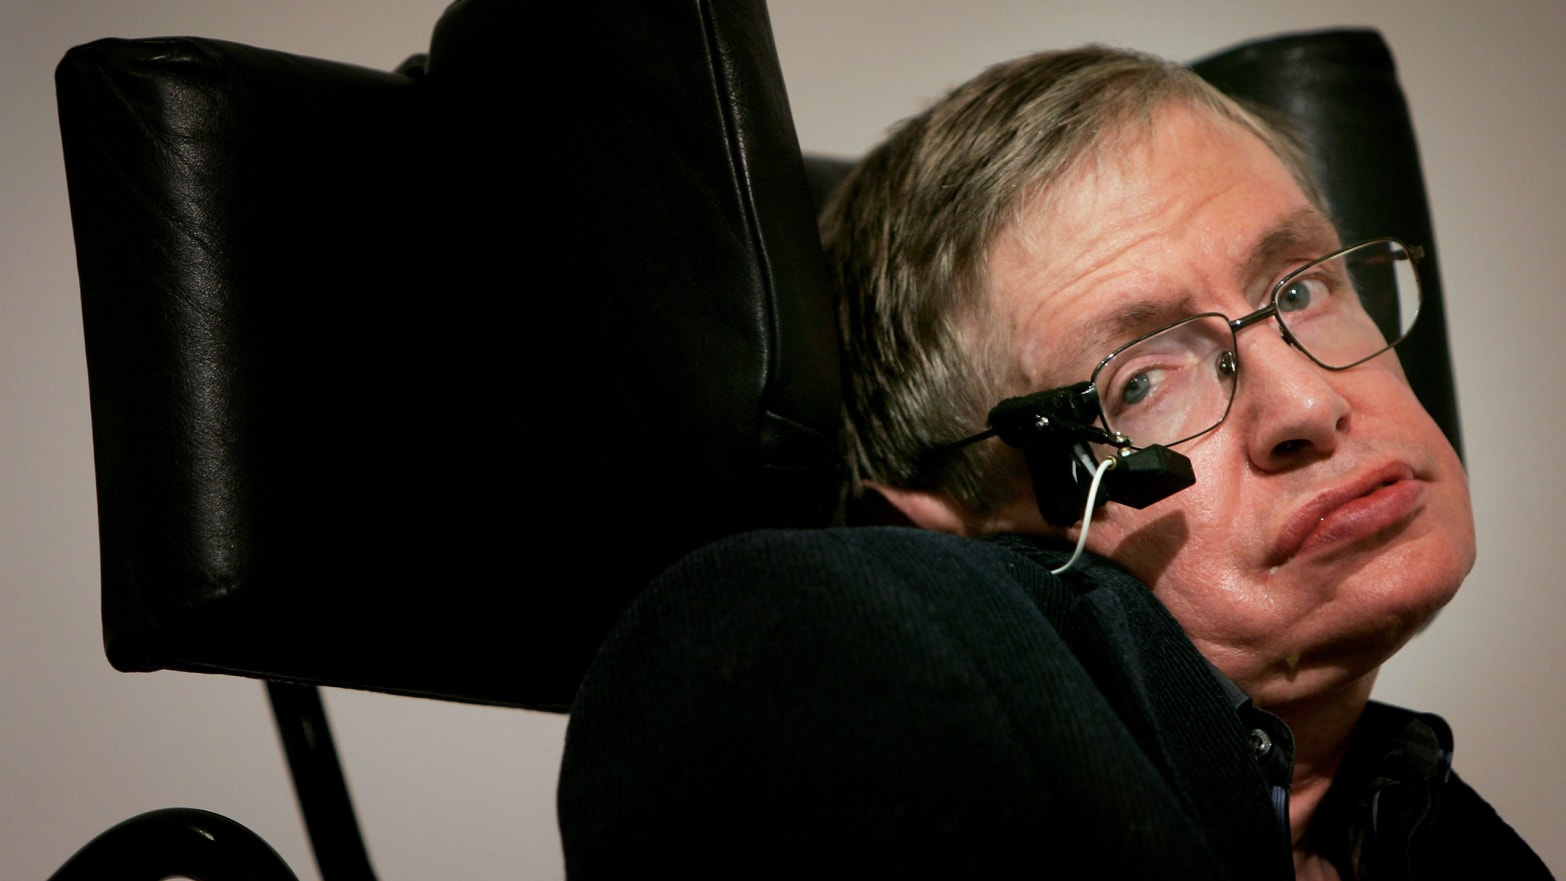 stephen hawking amyotrophic lateral sclerosis als lou gehrig's disease the theory of everything simpsons star trek big bang theory crunch quantum mechanics physics genius